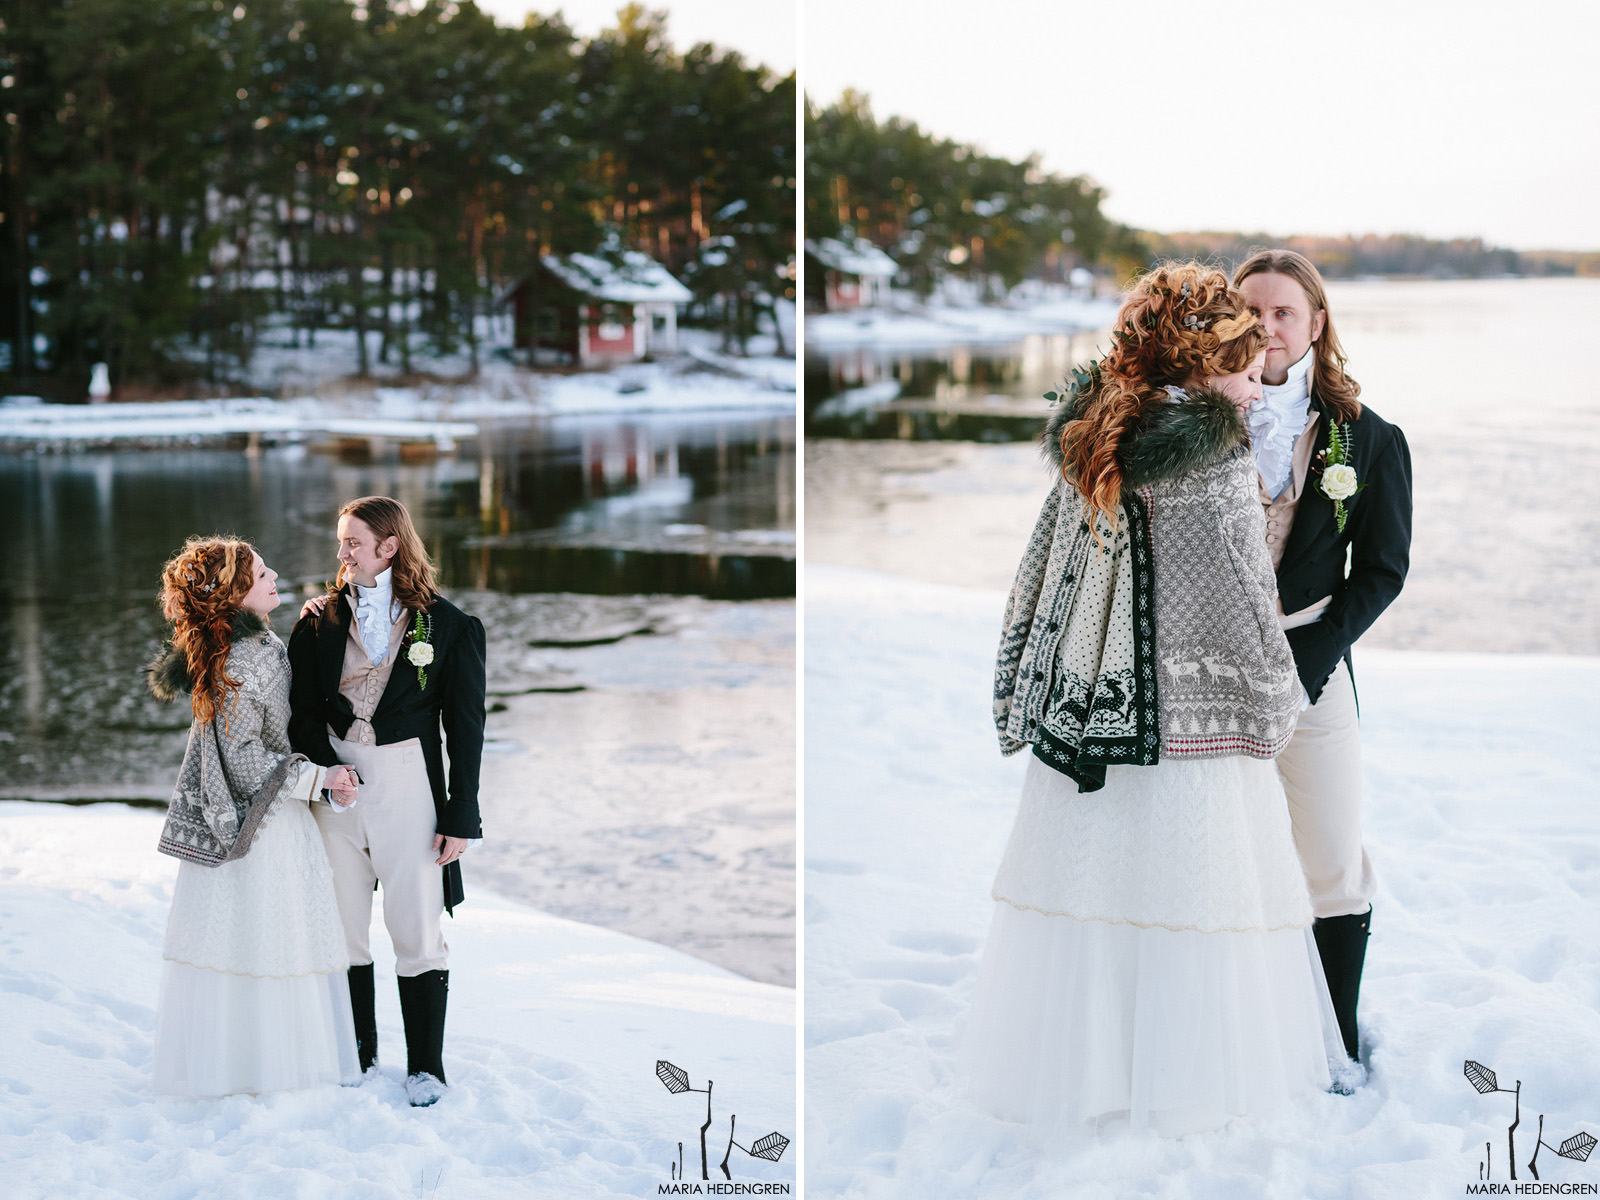 Jane Austen winter wedding